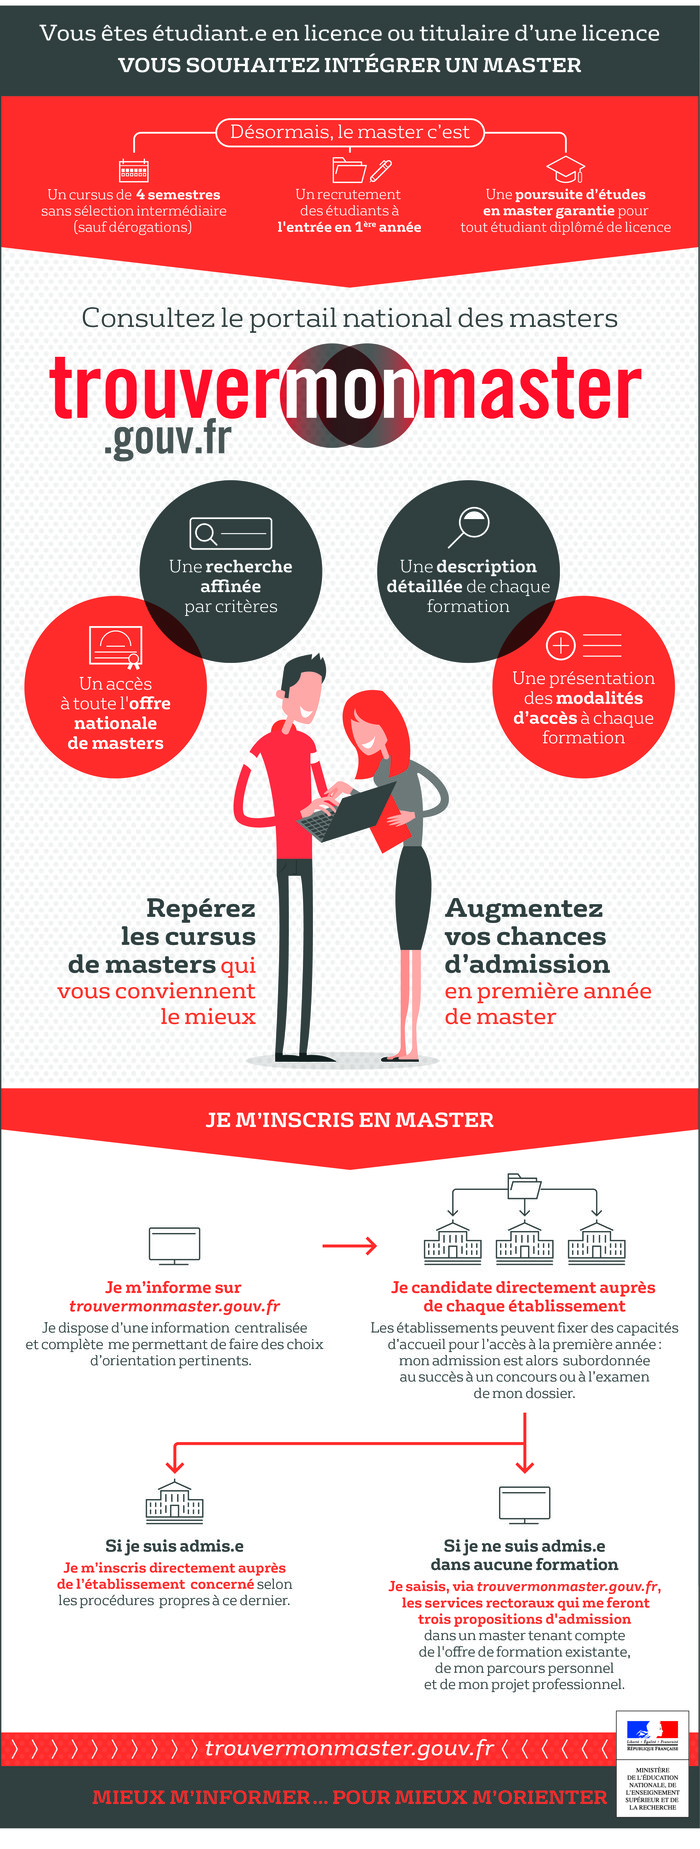 trouvermonmaster.gouv.fr_infographie